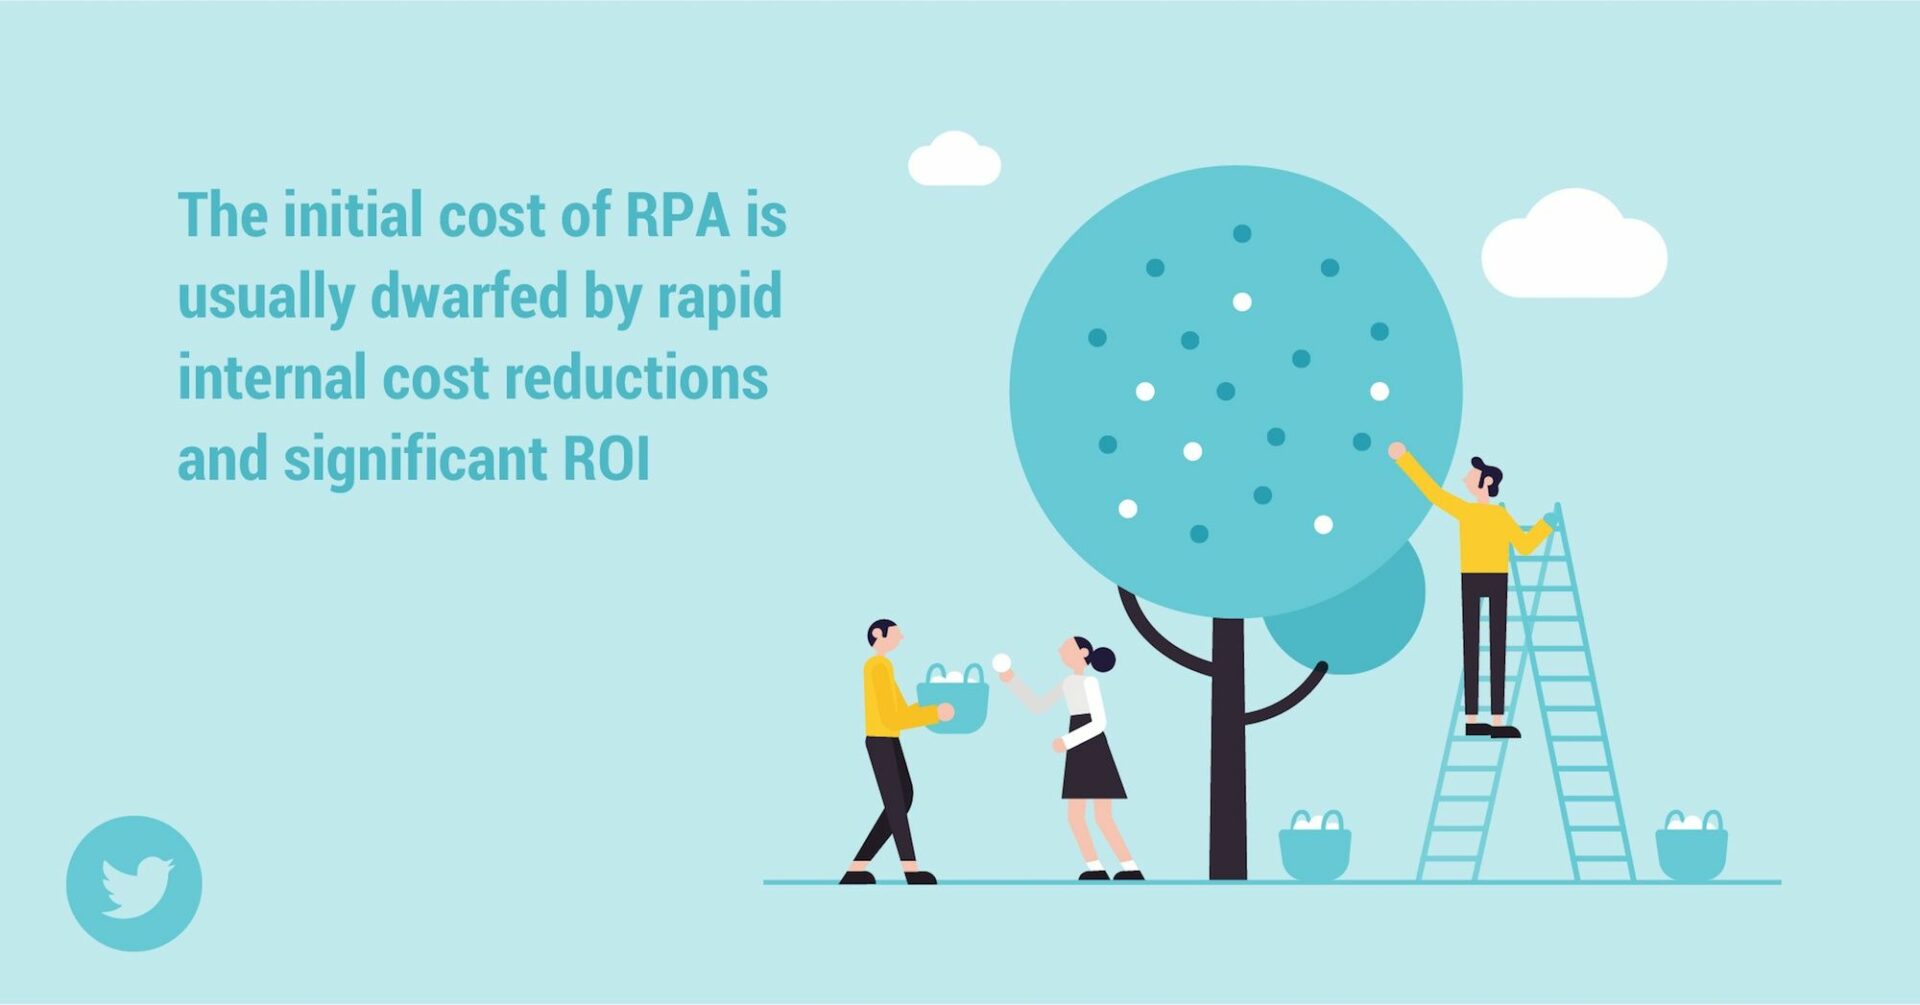 the initial cost of RPA is usually dwarfed by rapid internal cost reductions and significant ROI